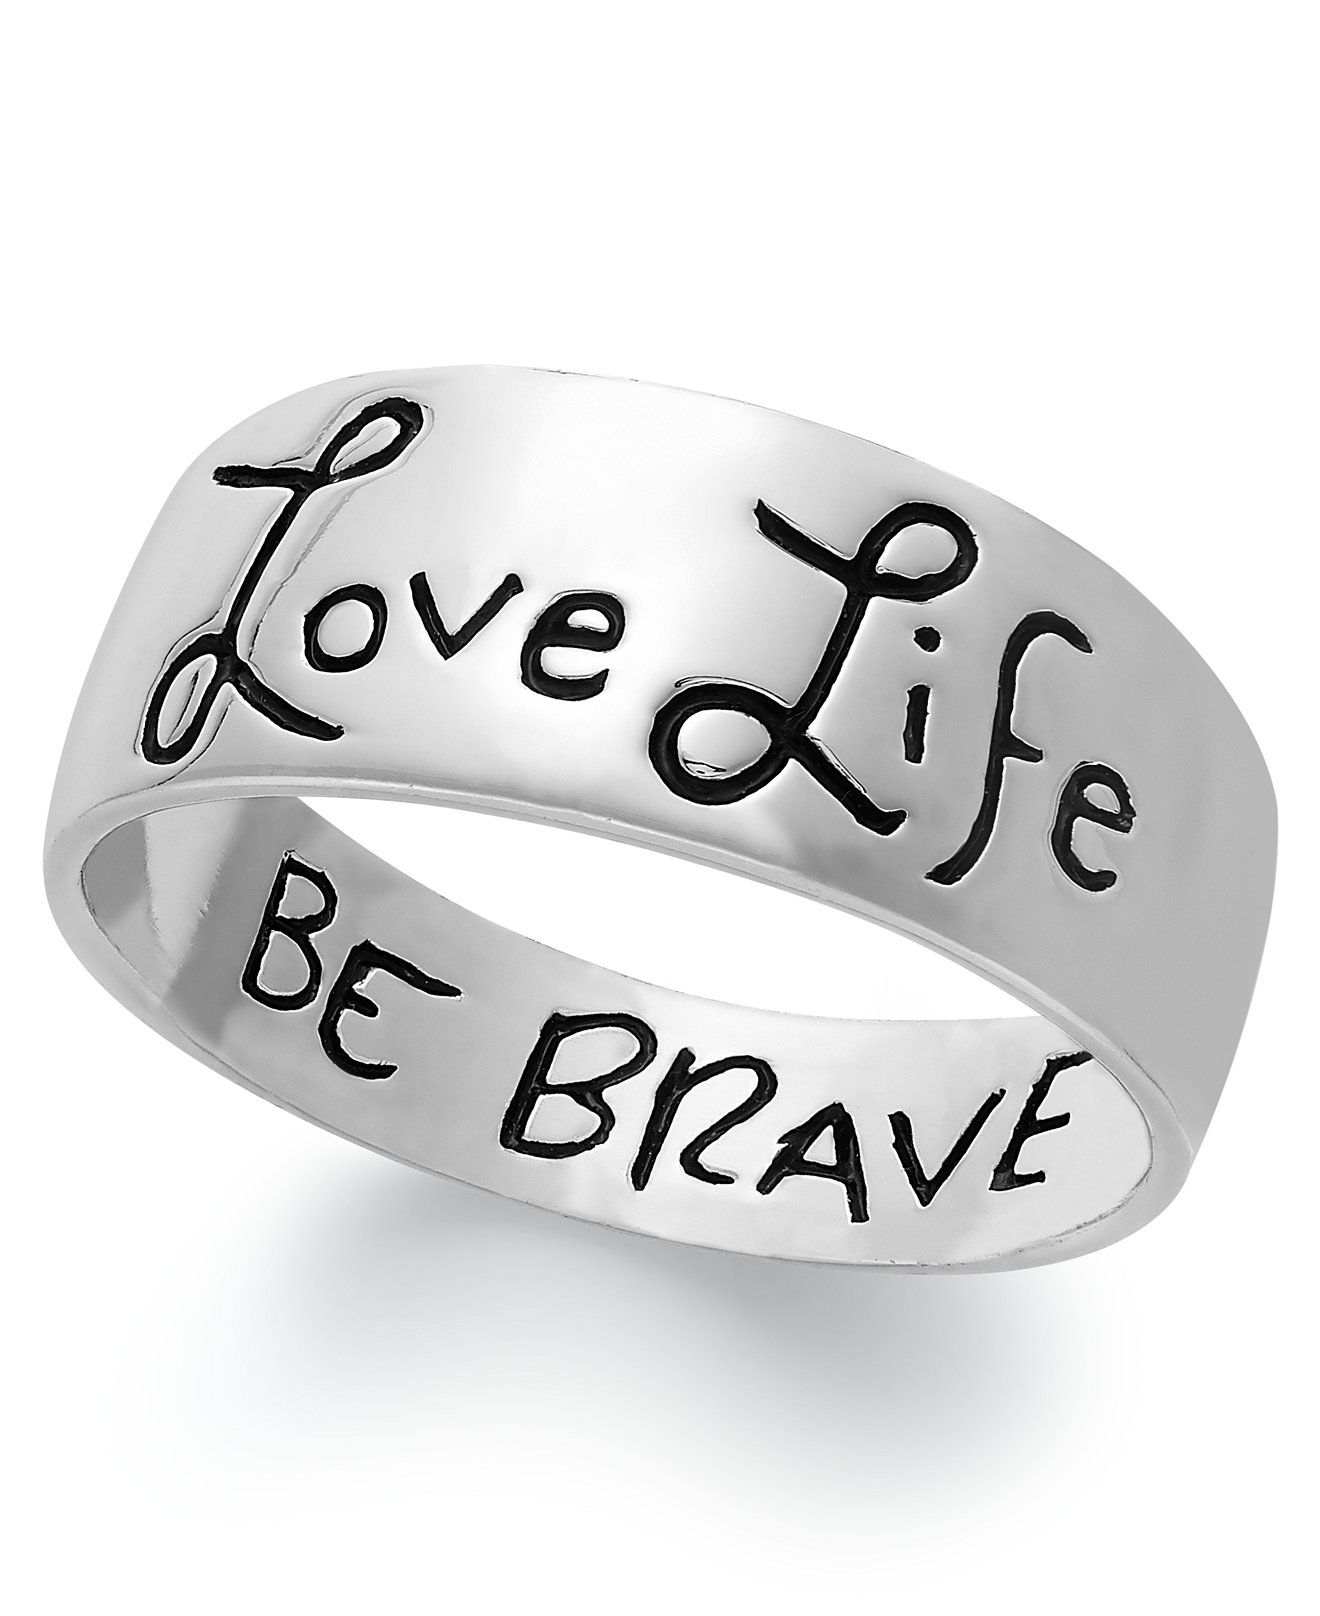 Unwritten Love Life Be Brave Engraved Ring Sterling Silver Ad